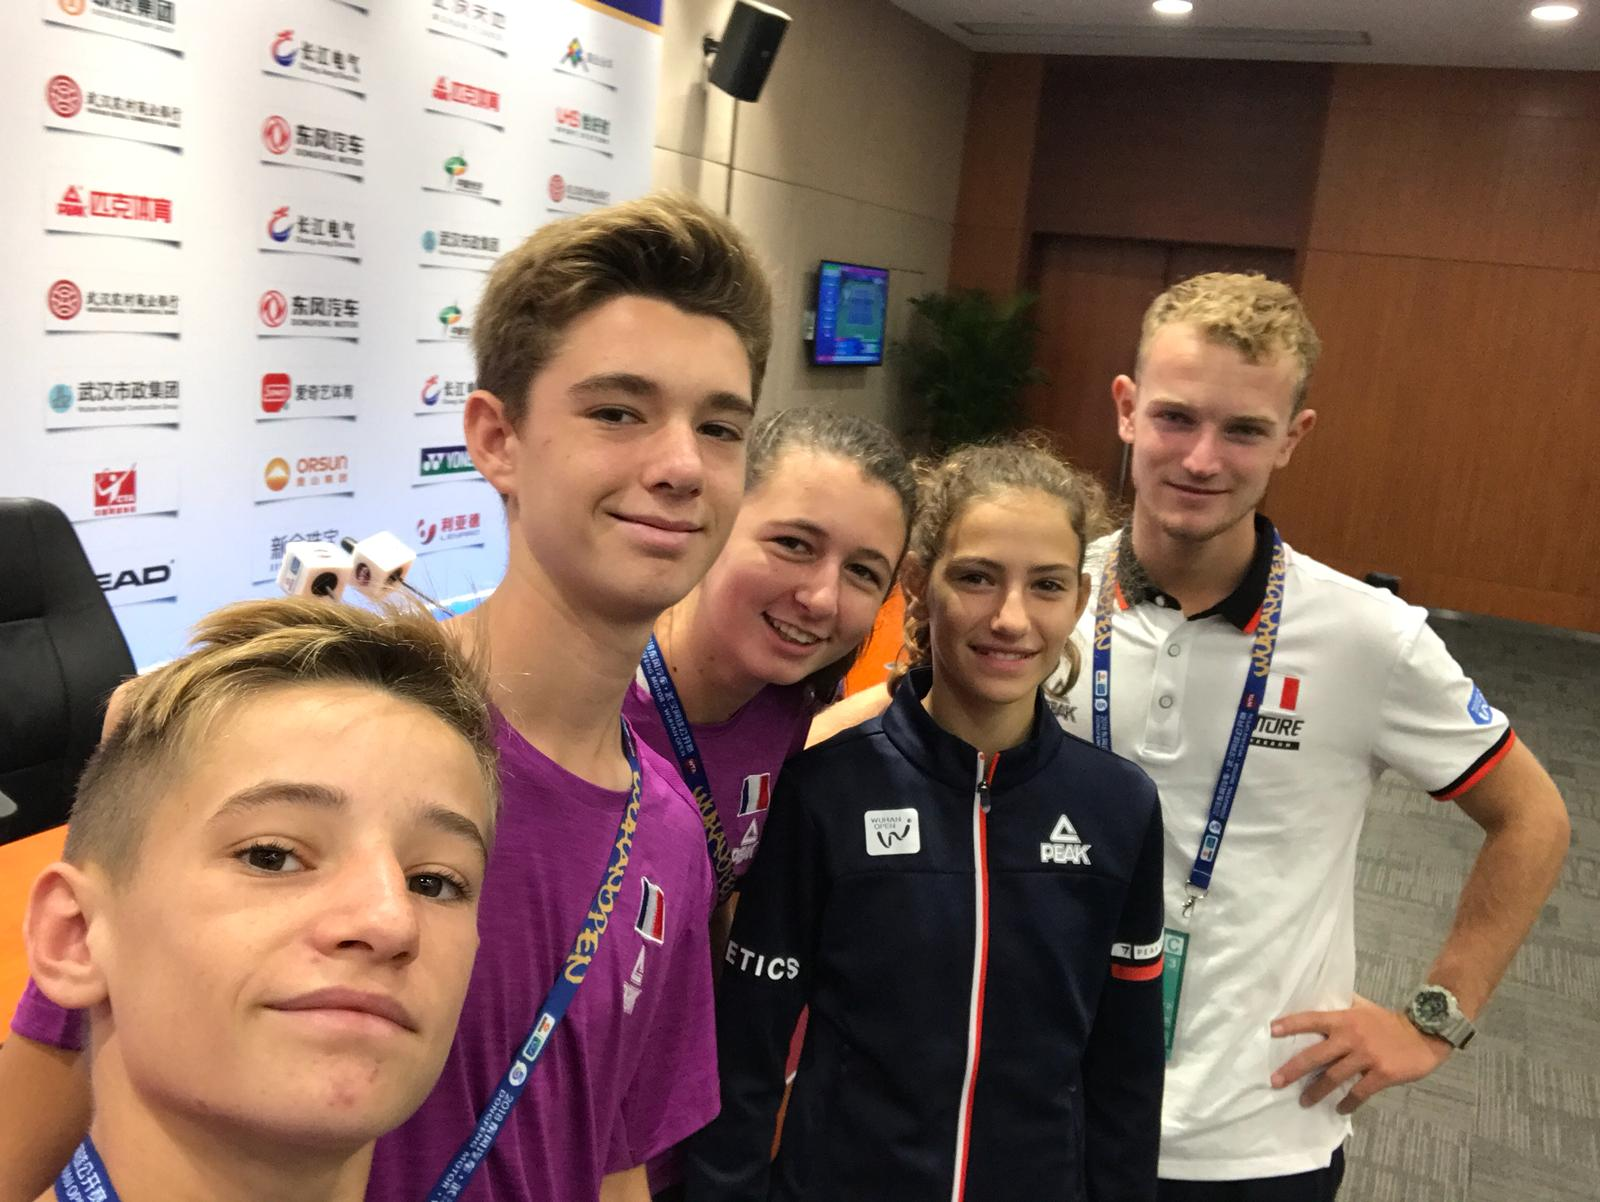 Ballkids Louis Anceau, Paul Besse, Gaelle Mangin, Camille Galloy, and Alexandre Gardon at the Wuhan Open 2018